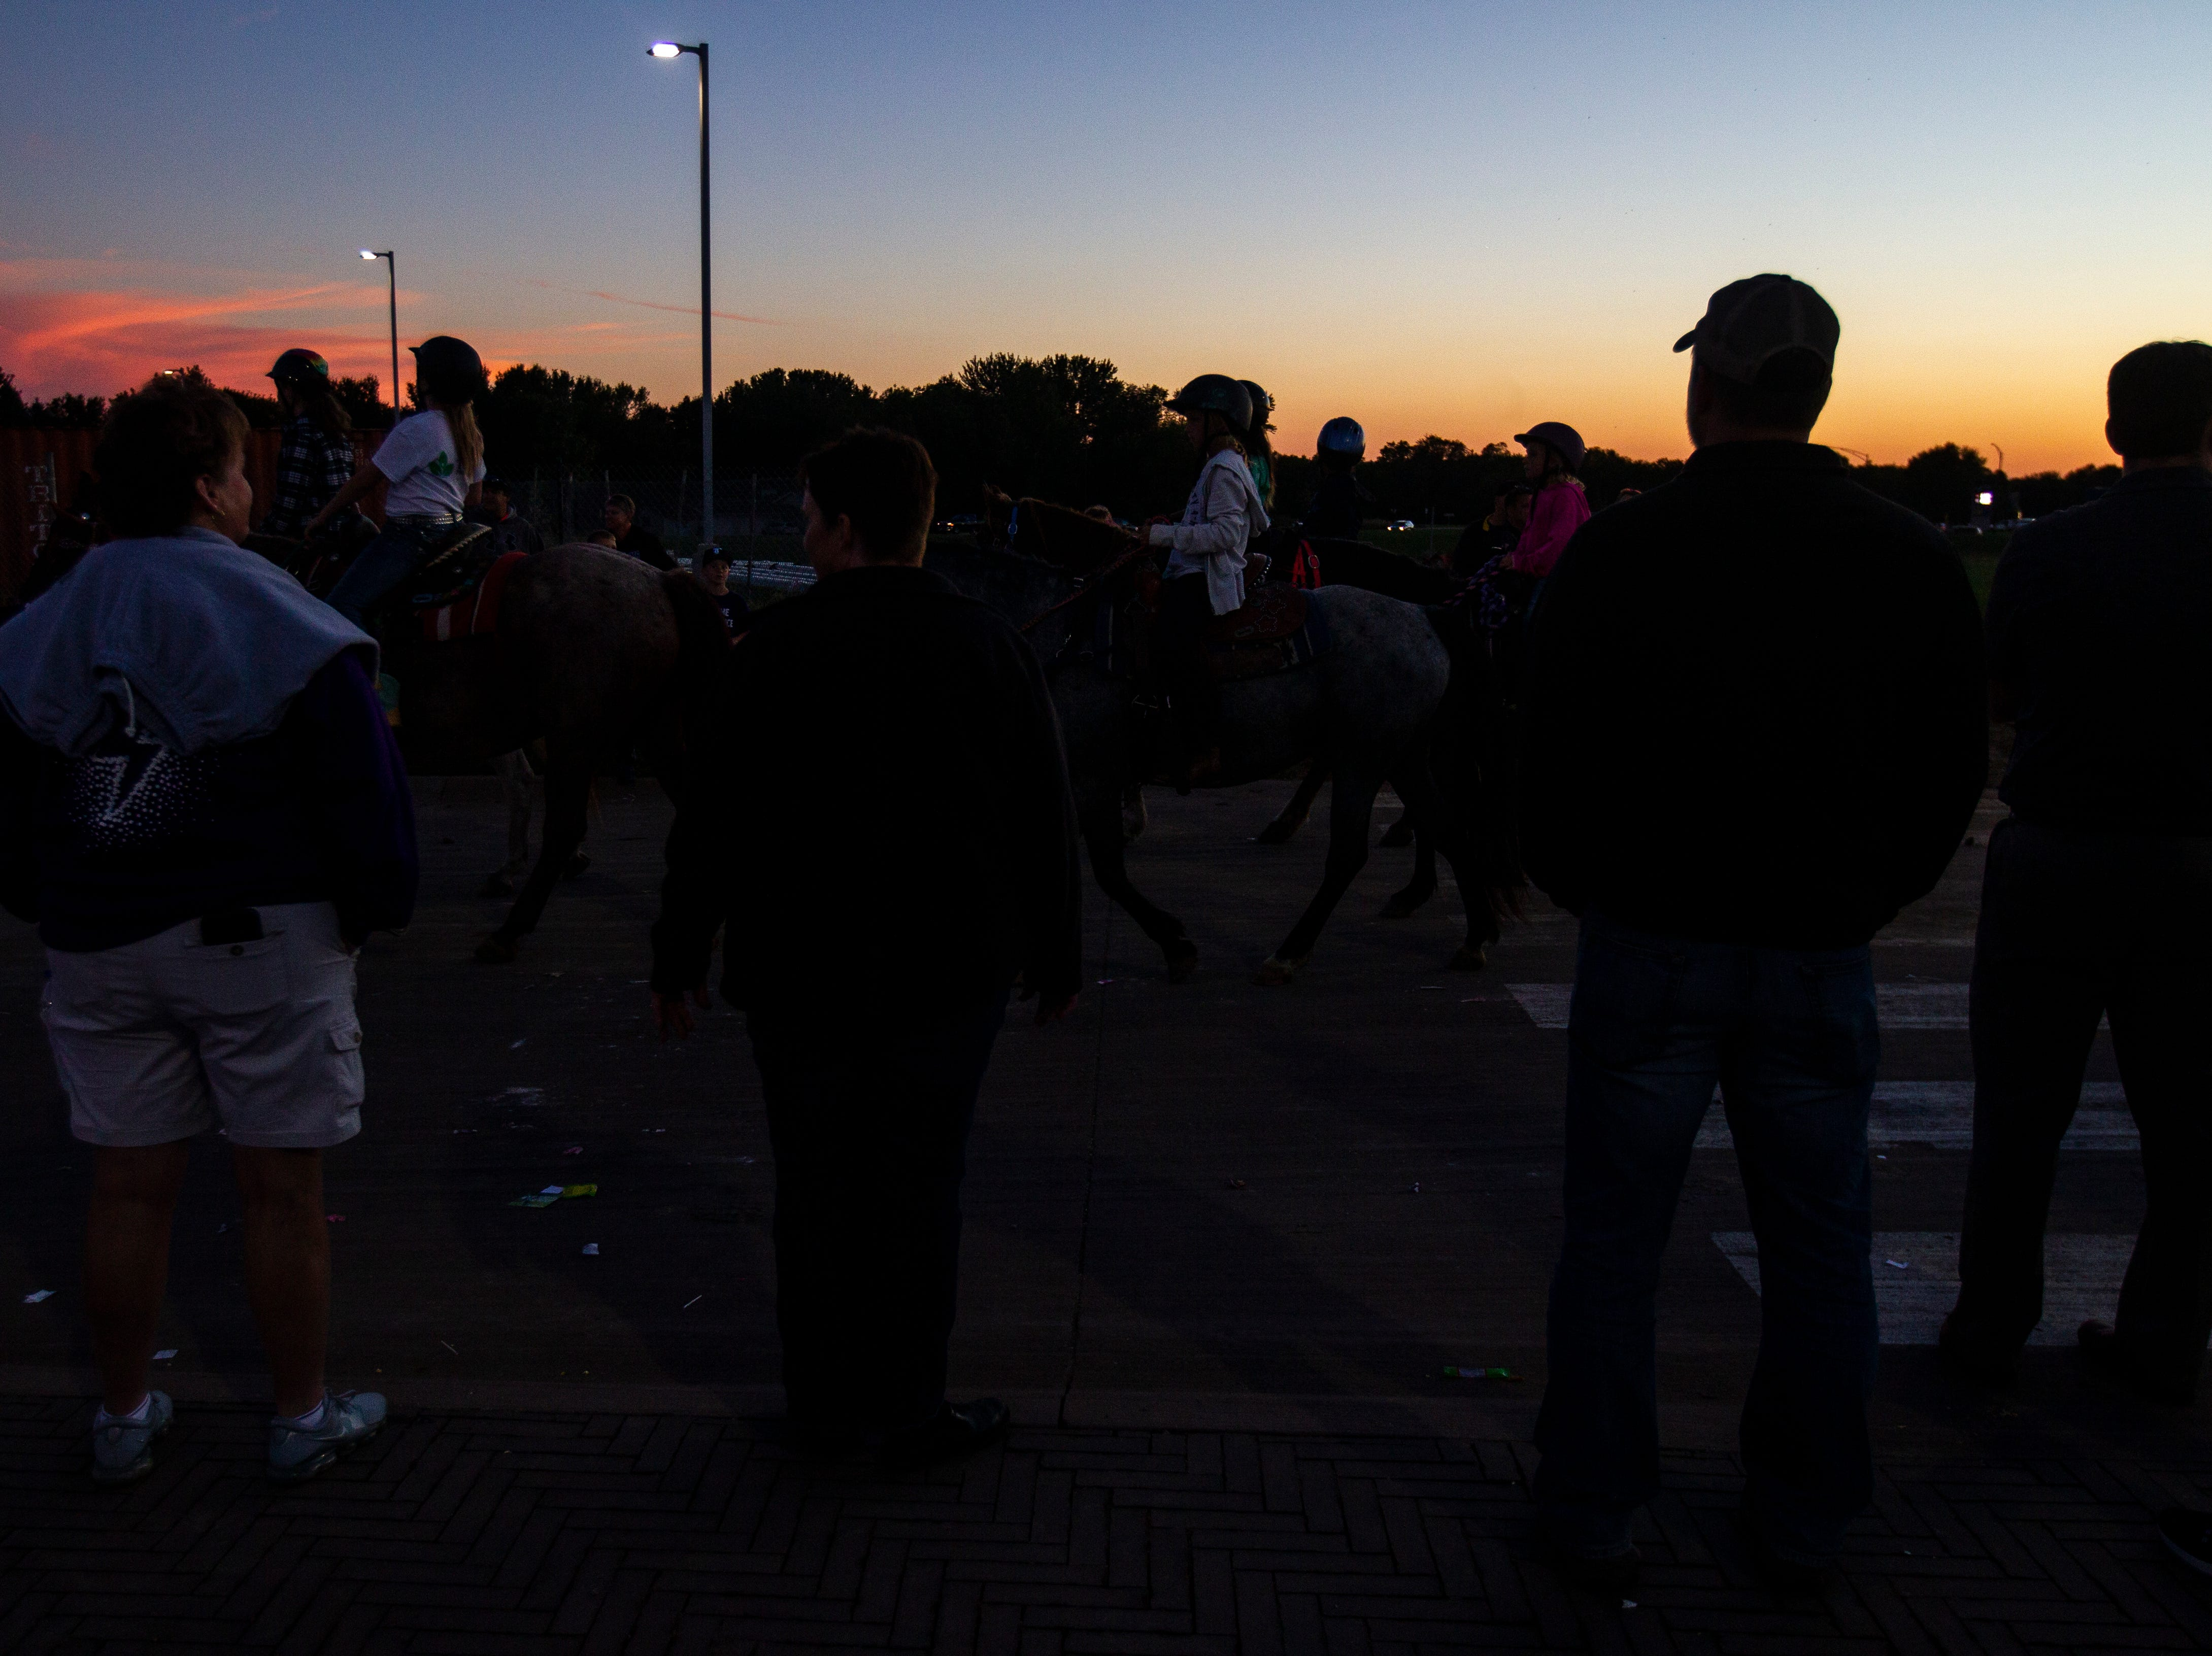 Student ride on a horses as the sun sets during Liberty's homecoming parade on Wednesday, Sept. 26, 2018, in North Liberty, Iowa.